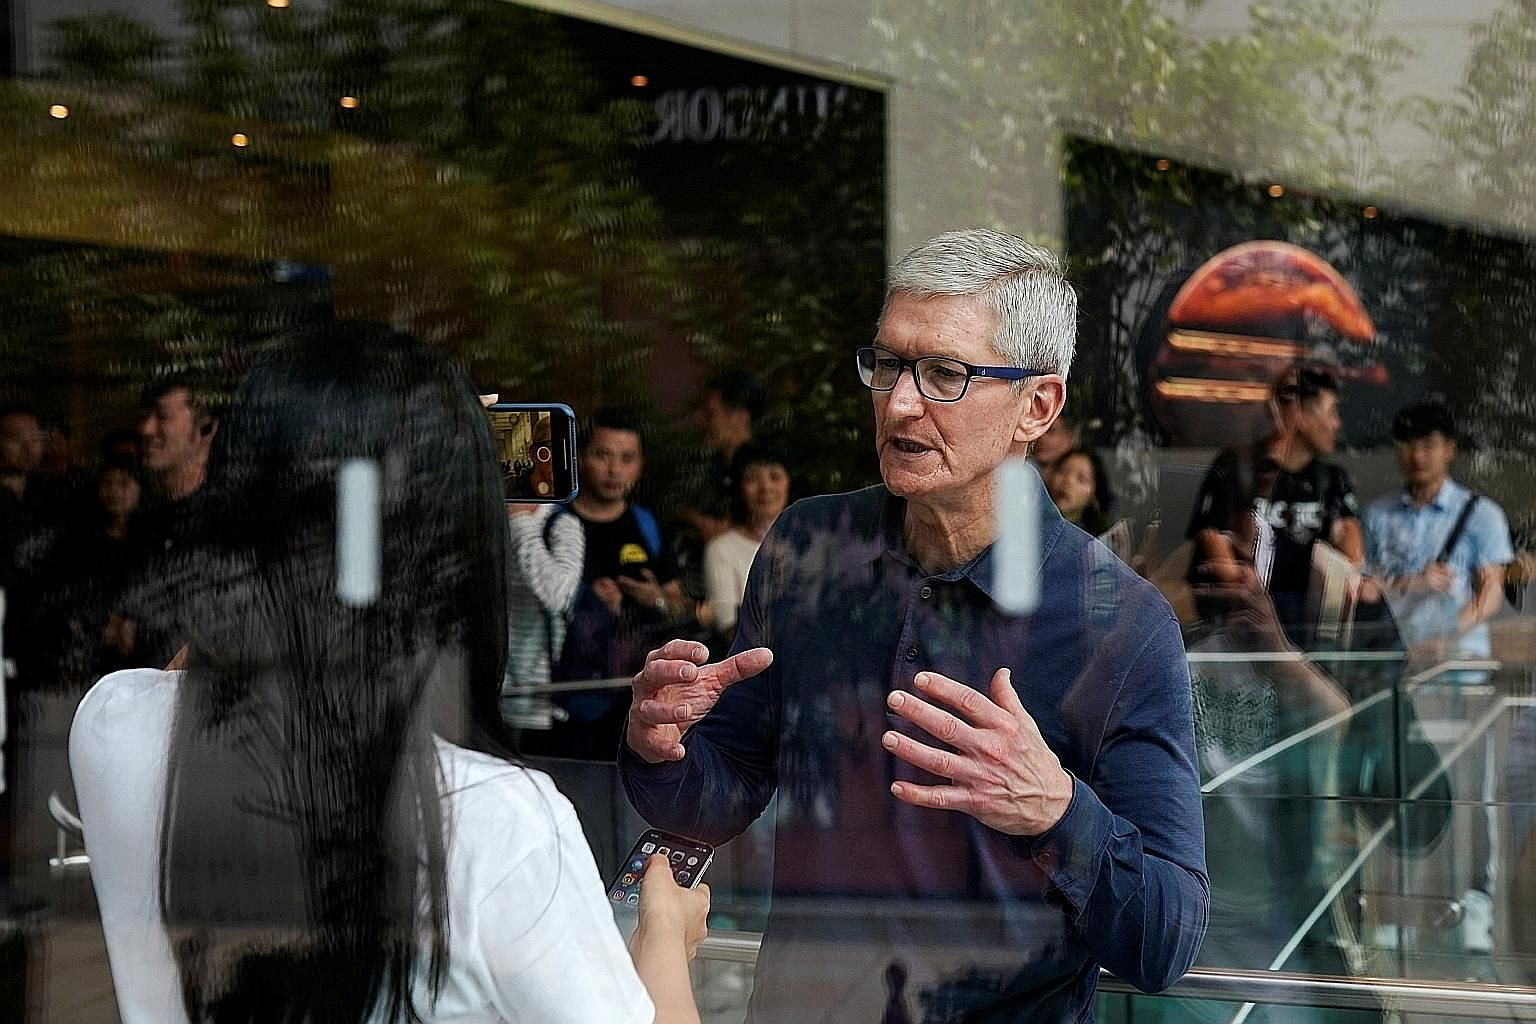 Apple CEO Tim Cook visiting an Apple store in Shanghai last October. Mr Cook was among those who called for a retraction after the Bloomberg Businessweek report on an alleged breach of US computer infrastructure by China. Former Trump lawyer Michael